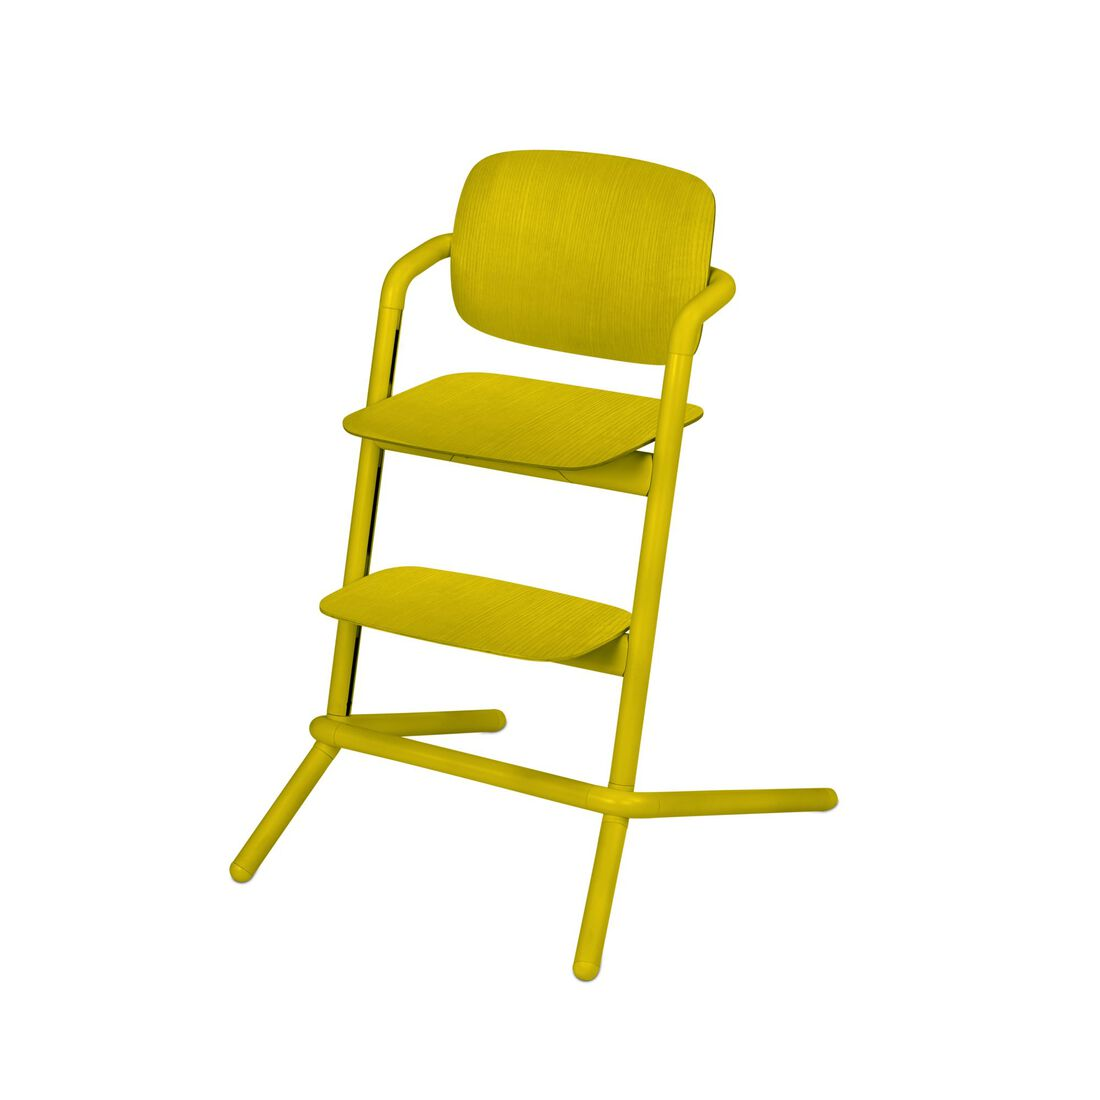 CYBEX Lemo Hochstuhl - Canary Yellow (Wood) in Canary Yellow (Wood) large Bild 1